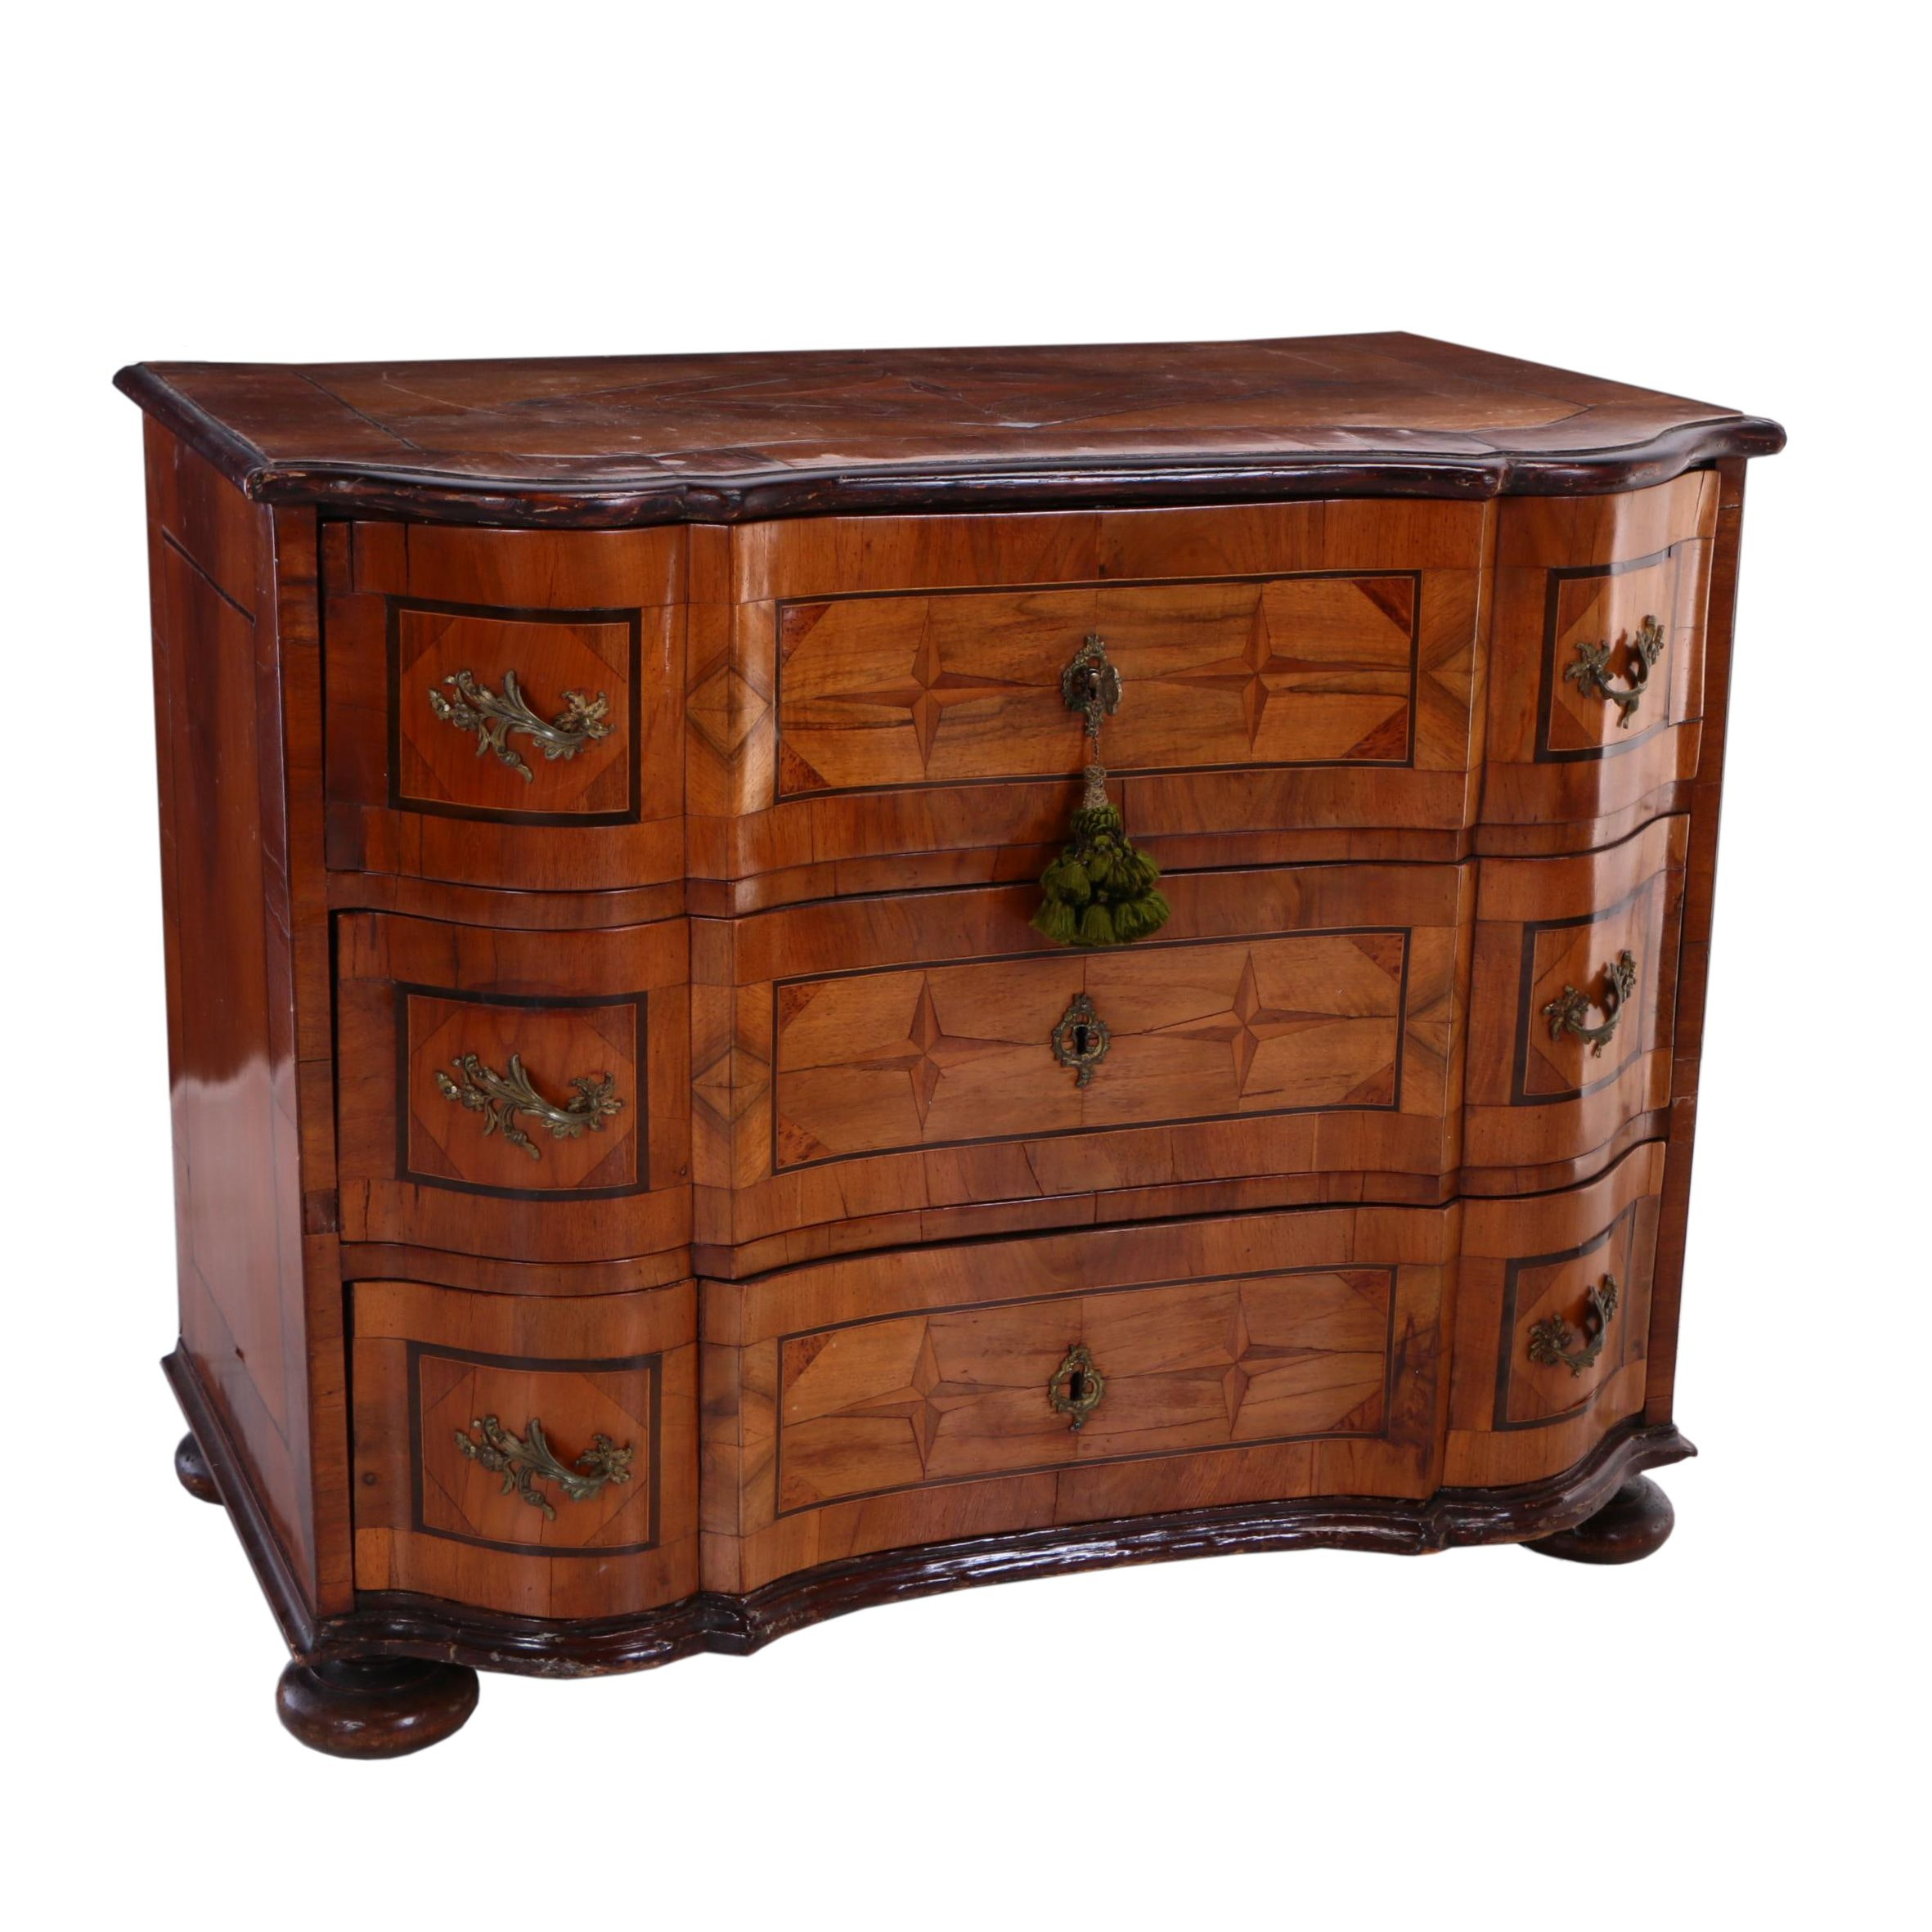 South German Baroque Walnut and Marquetry Serpentine-Front Commode, 18th Century